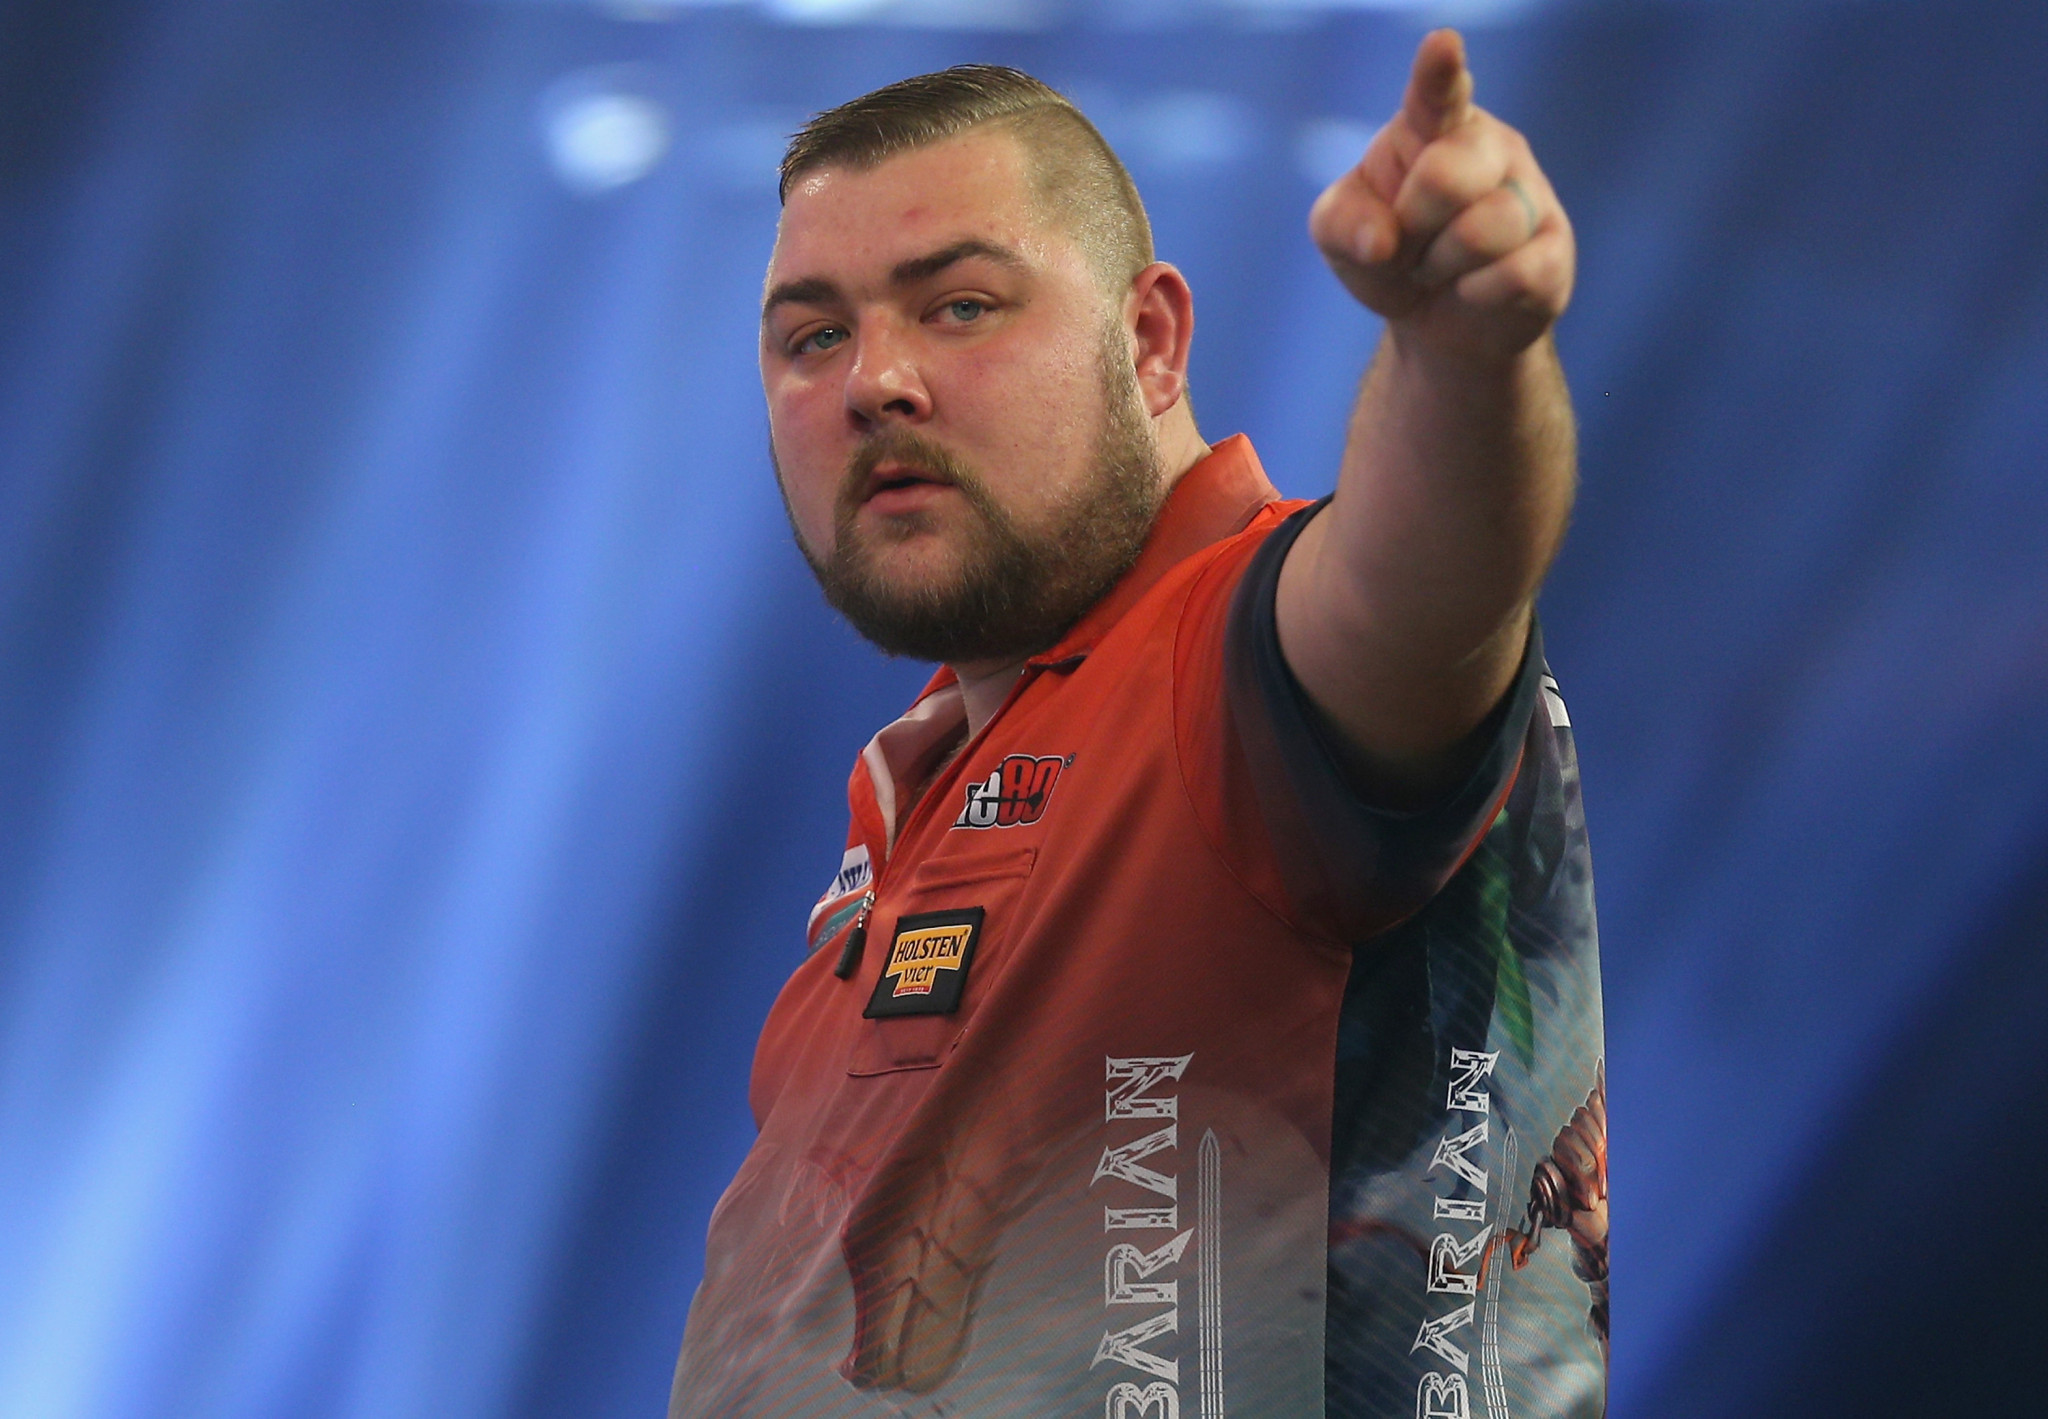 Whitehead stuns eighth seed Menzies to reach second round at BDO World Championship